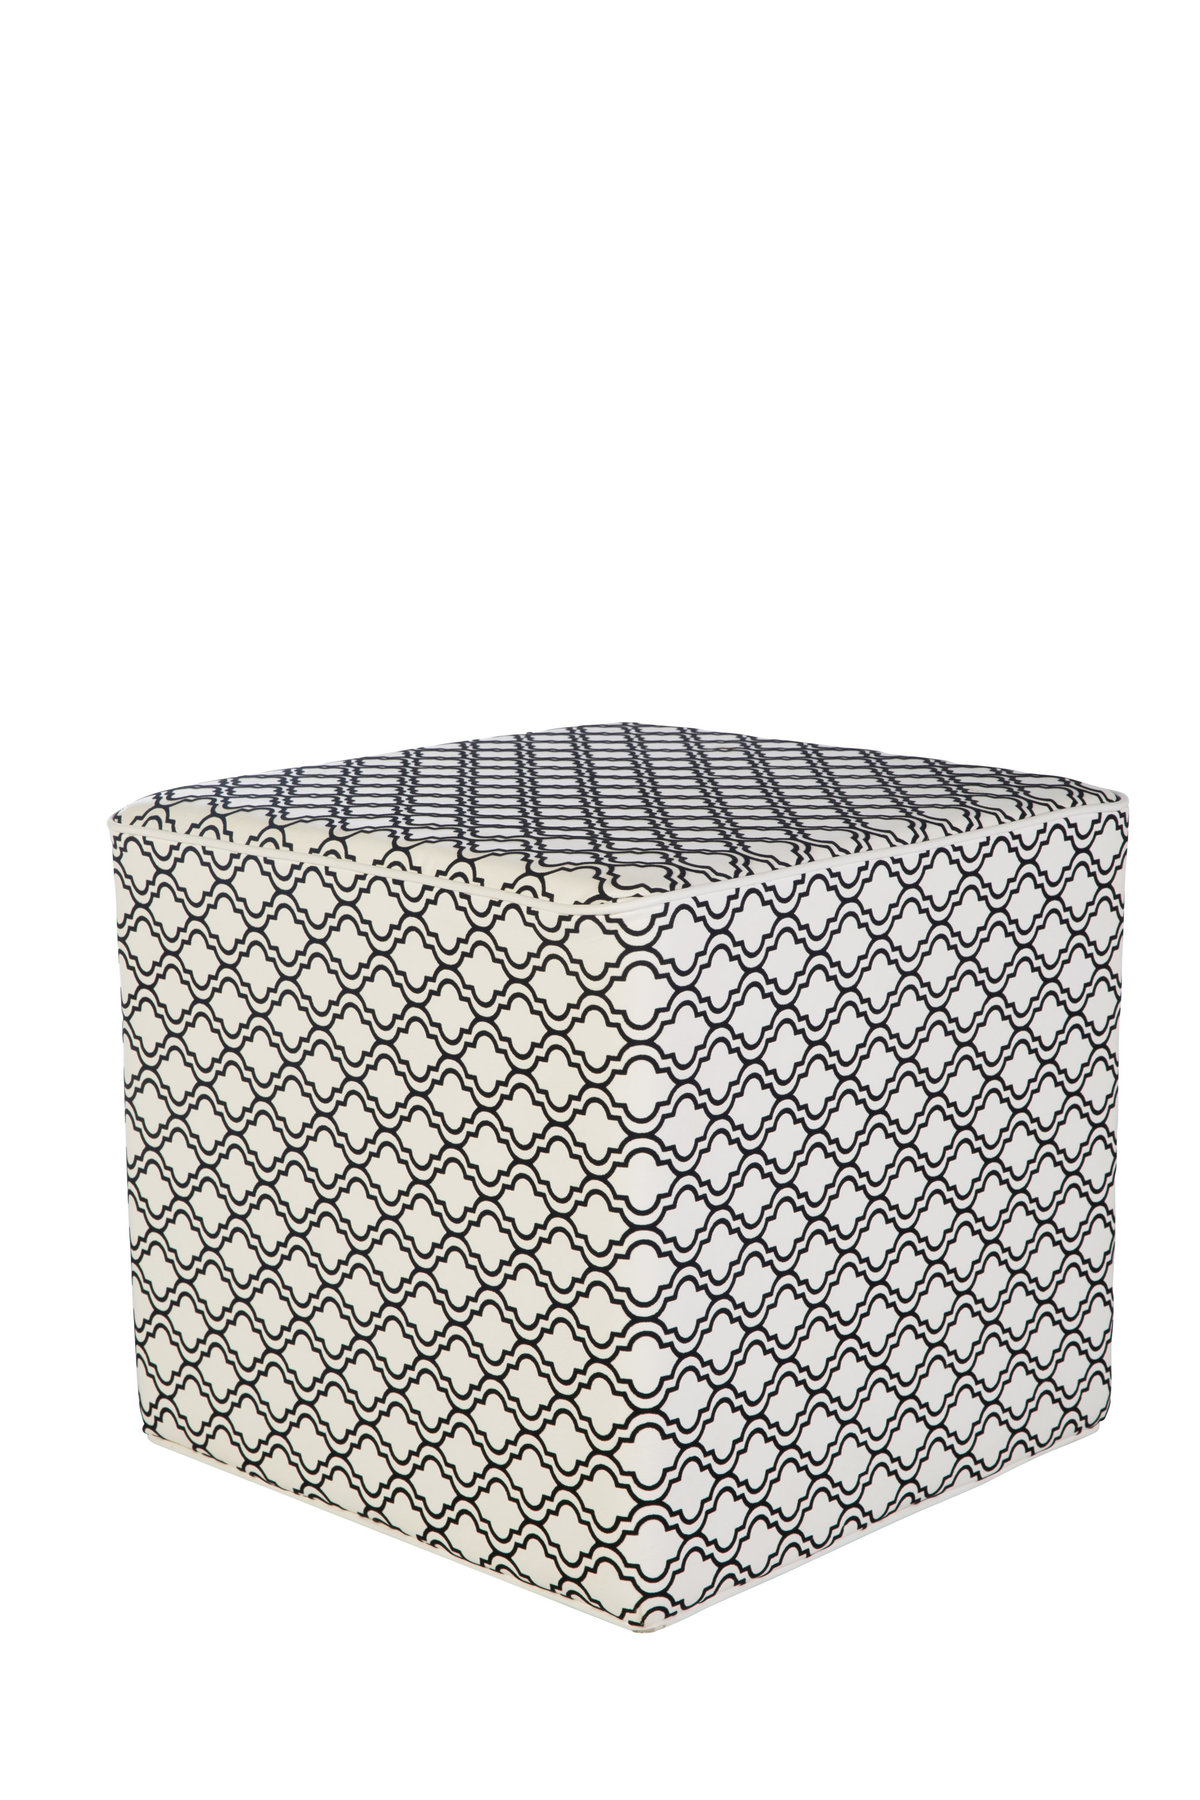 20''  x20'' Black & White Damask Cube Ottoman